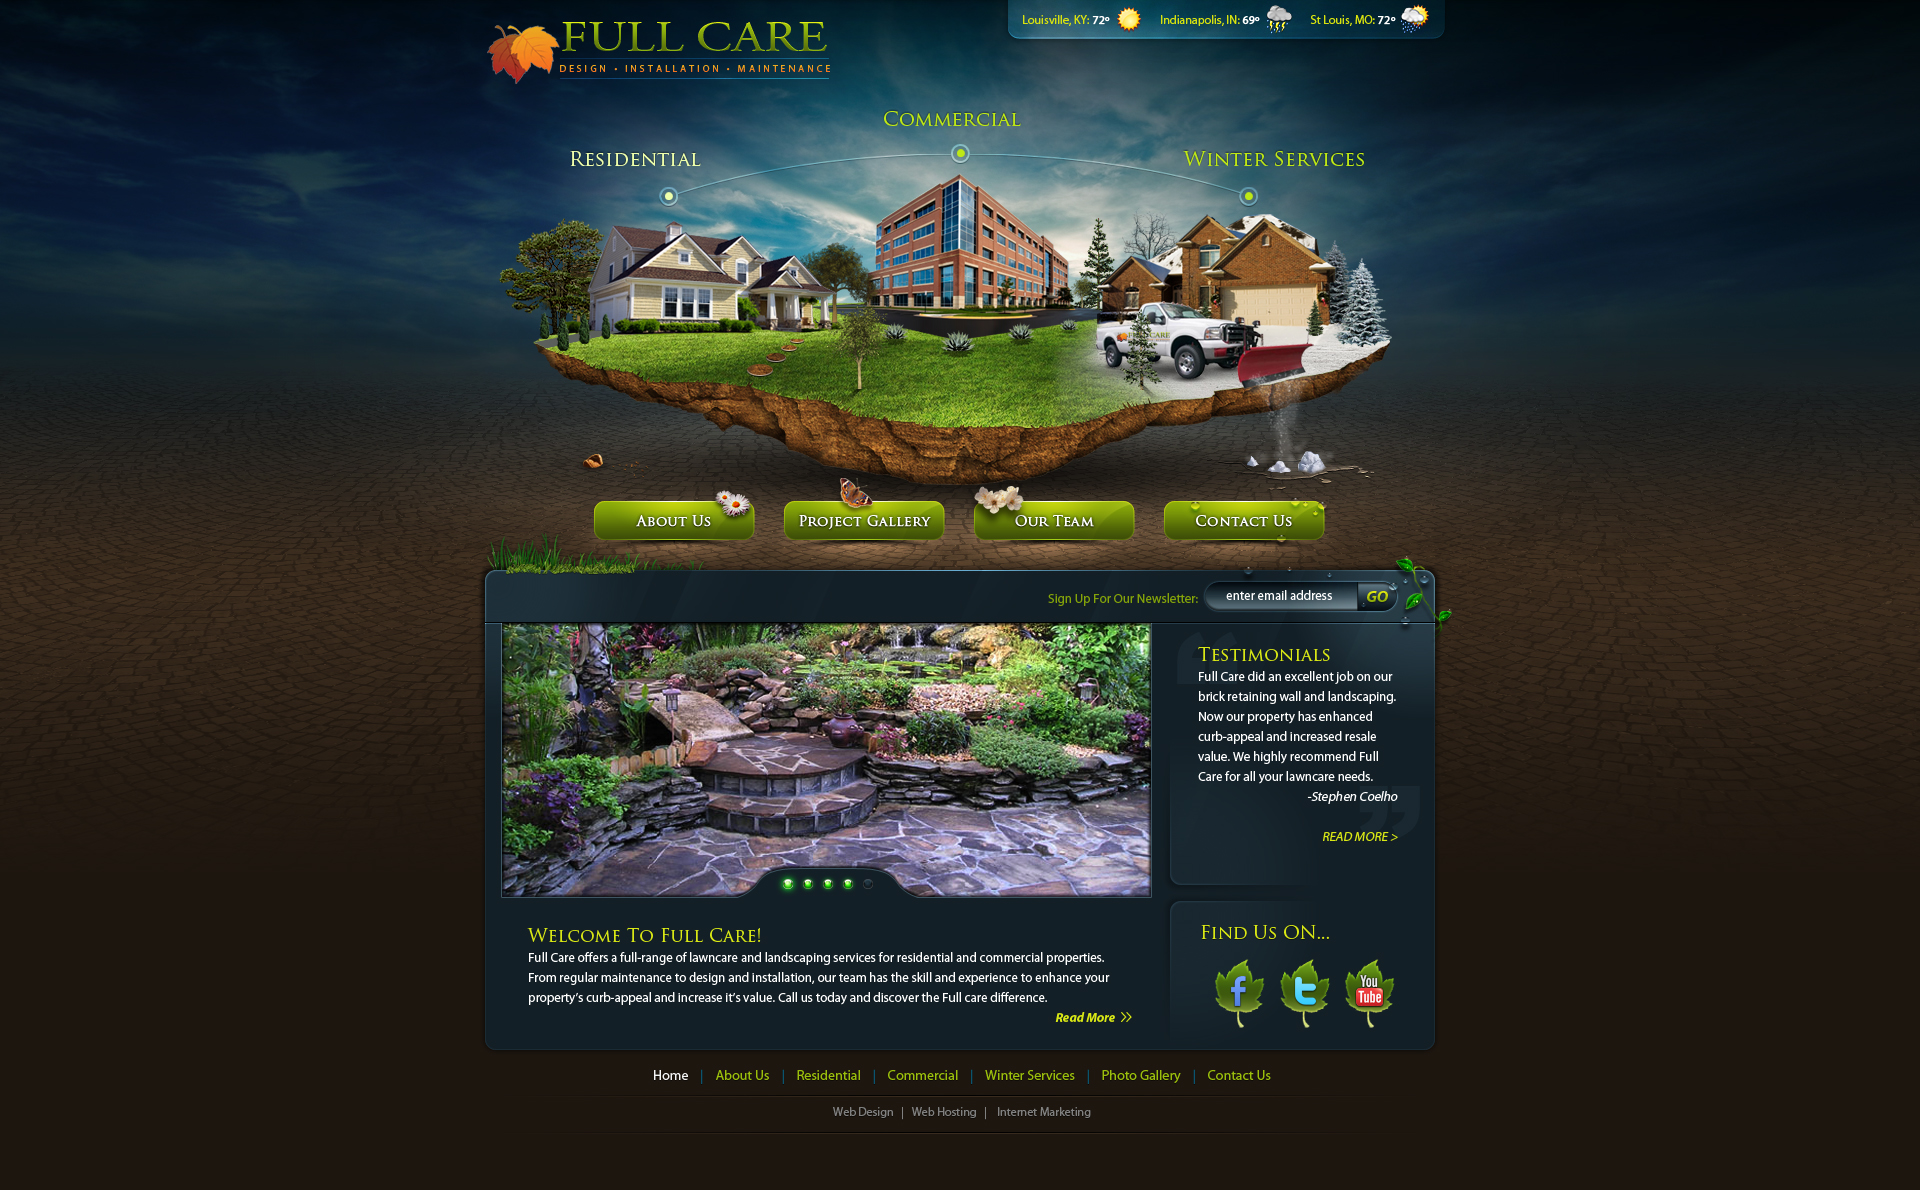 full care lawncare web design by stephen coelho on deviantart